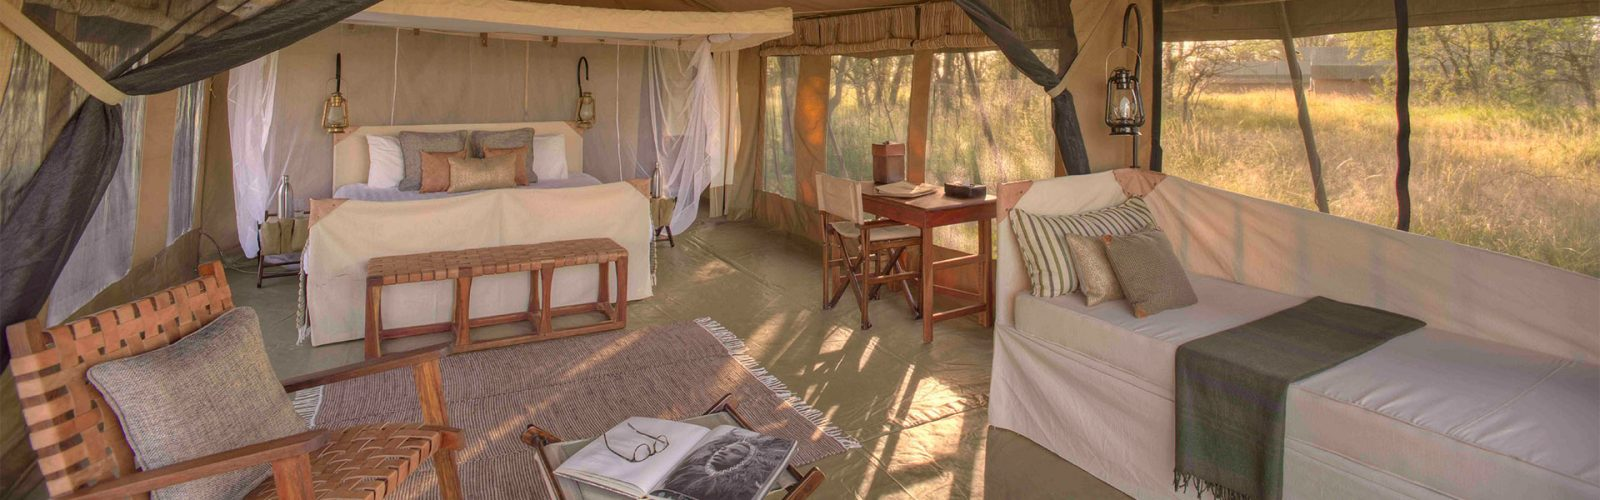 & Olakira Camp Luxury Safari Tent | Ocean Enterprises Travel